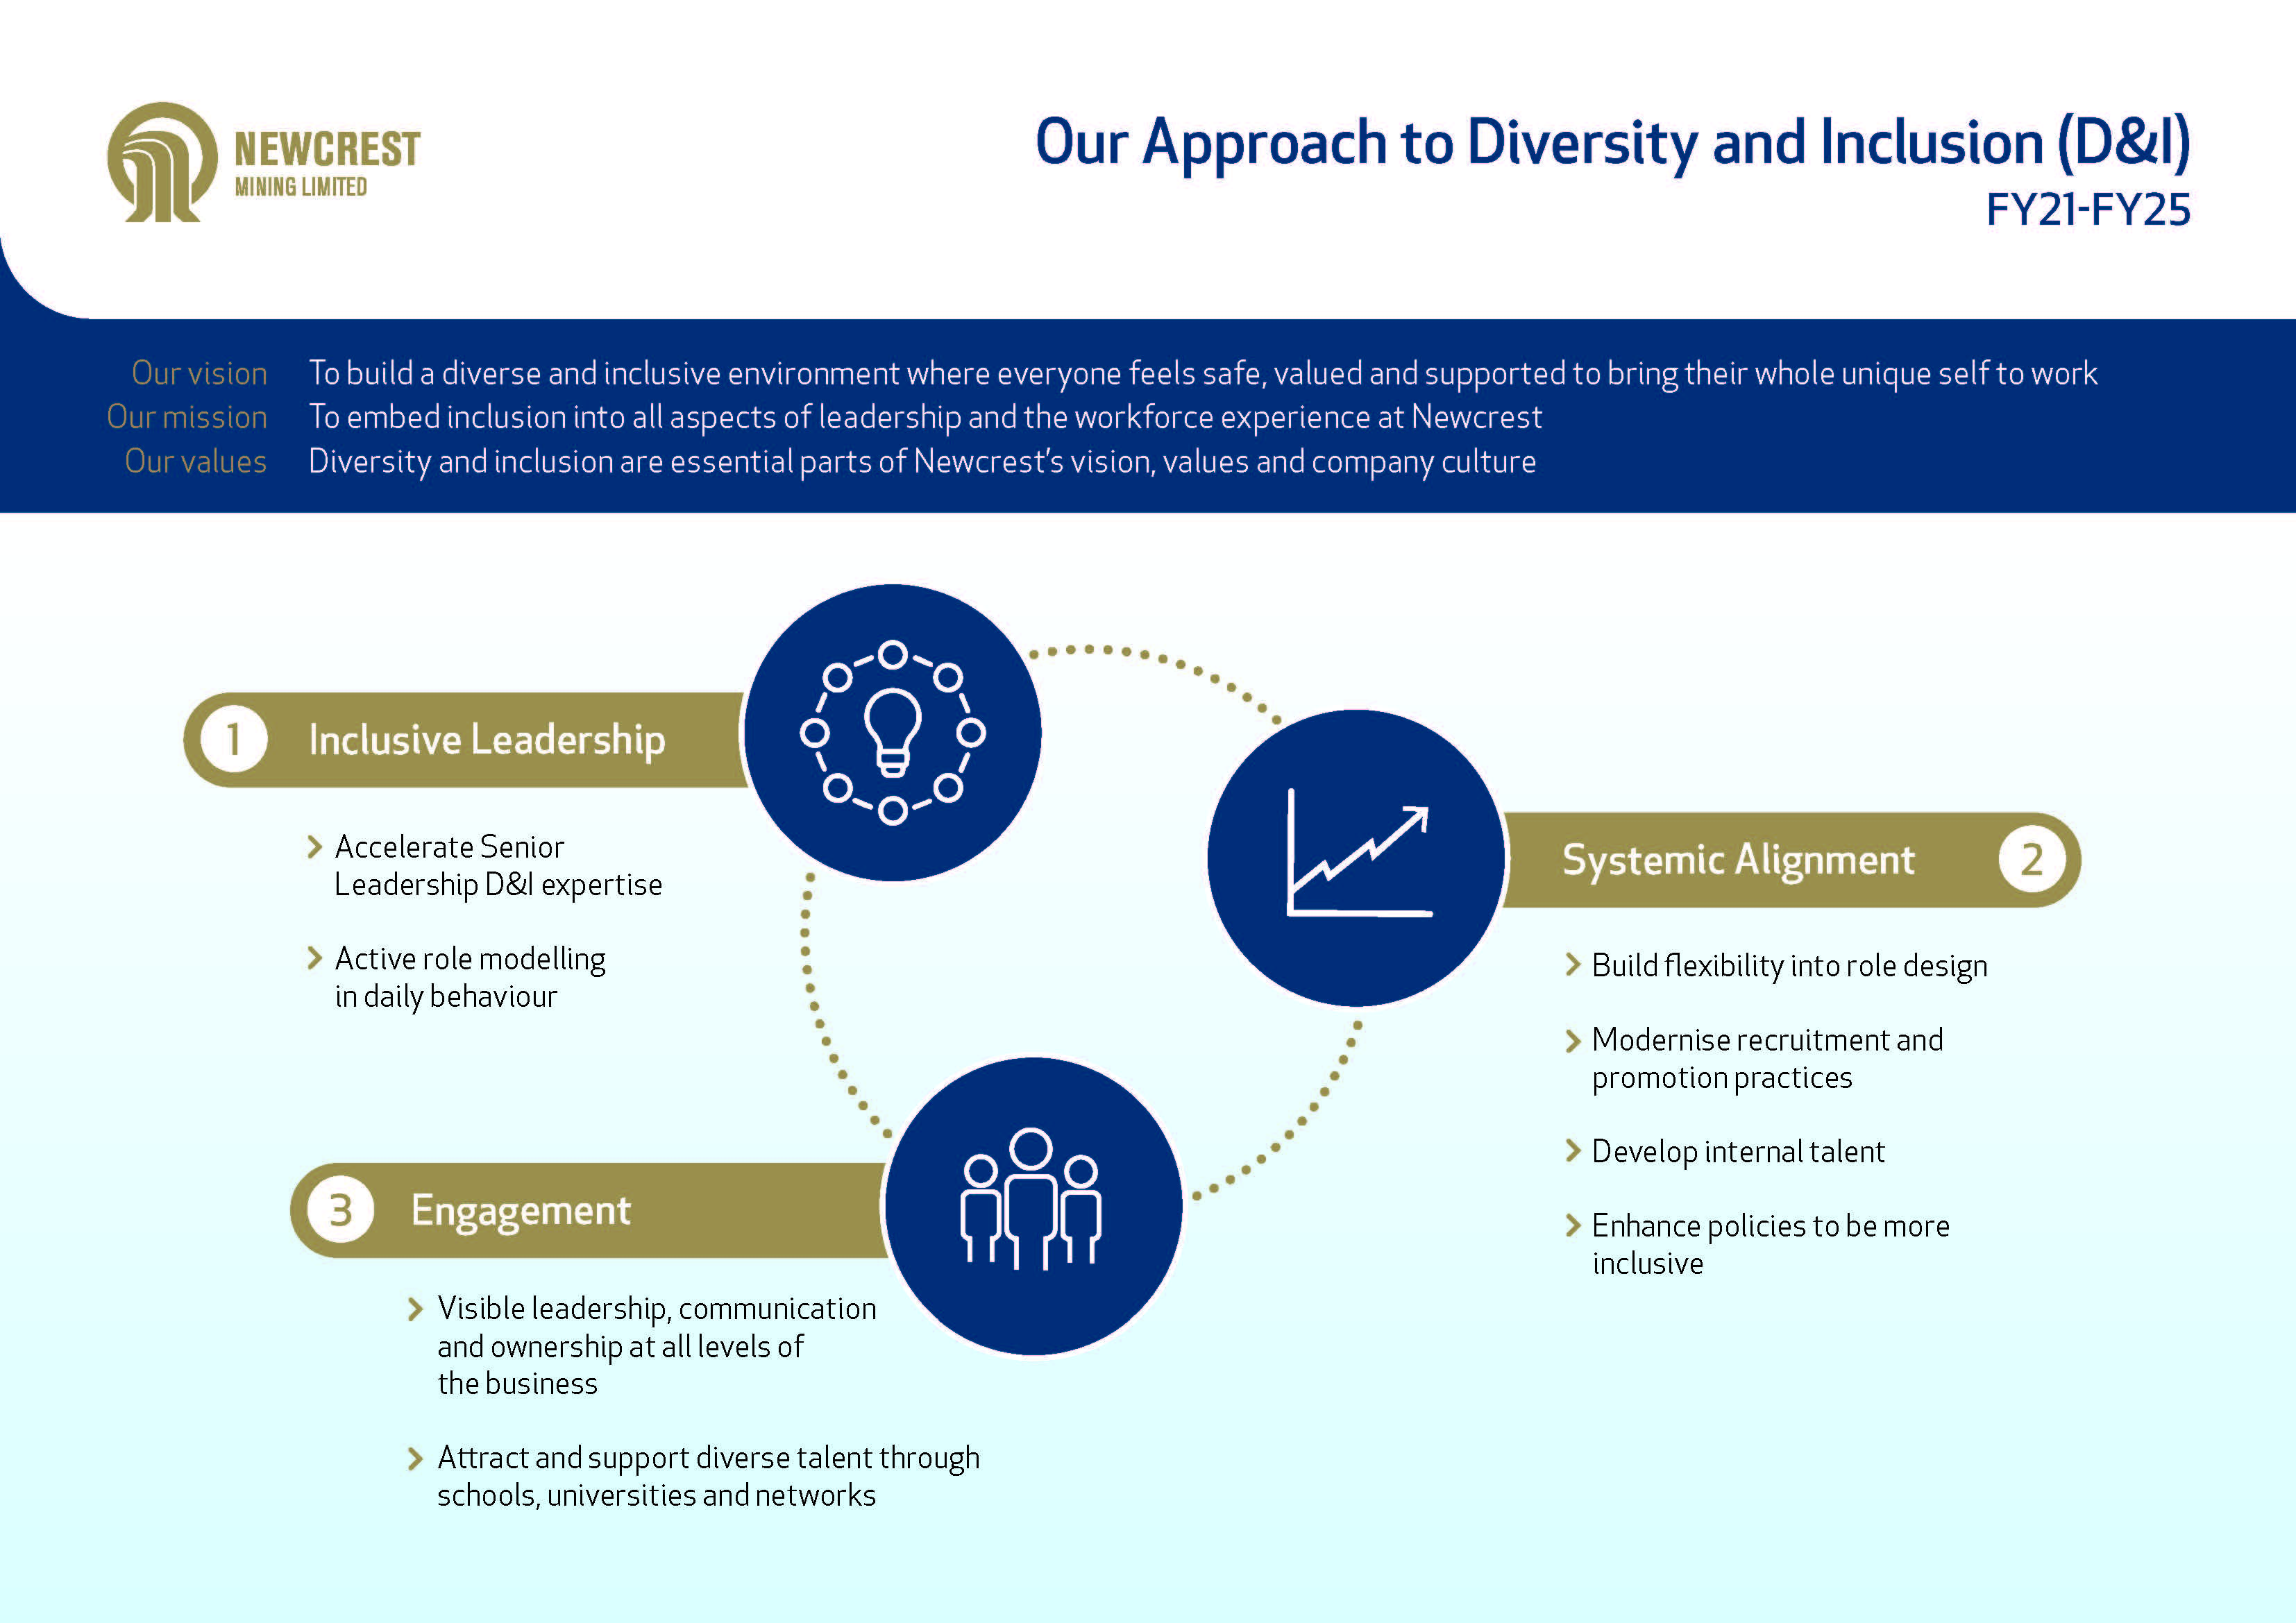 Our approach to Diversity and Inclusion